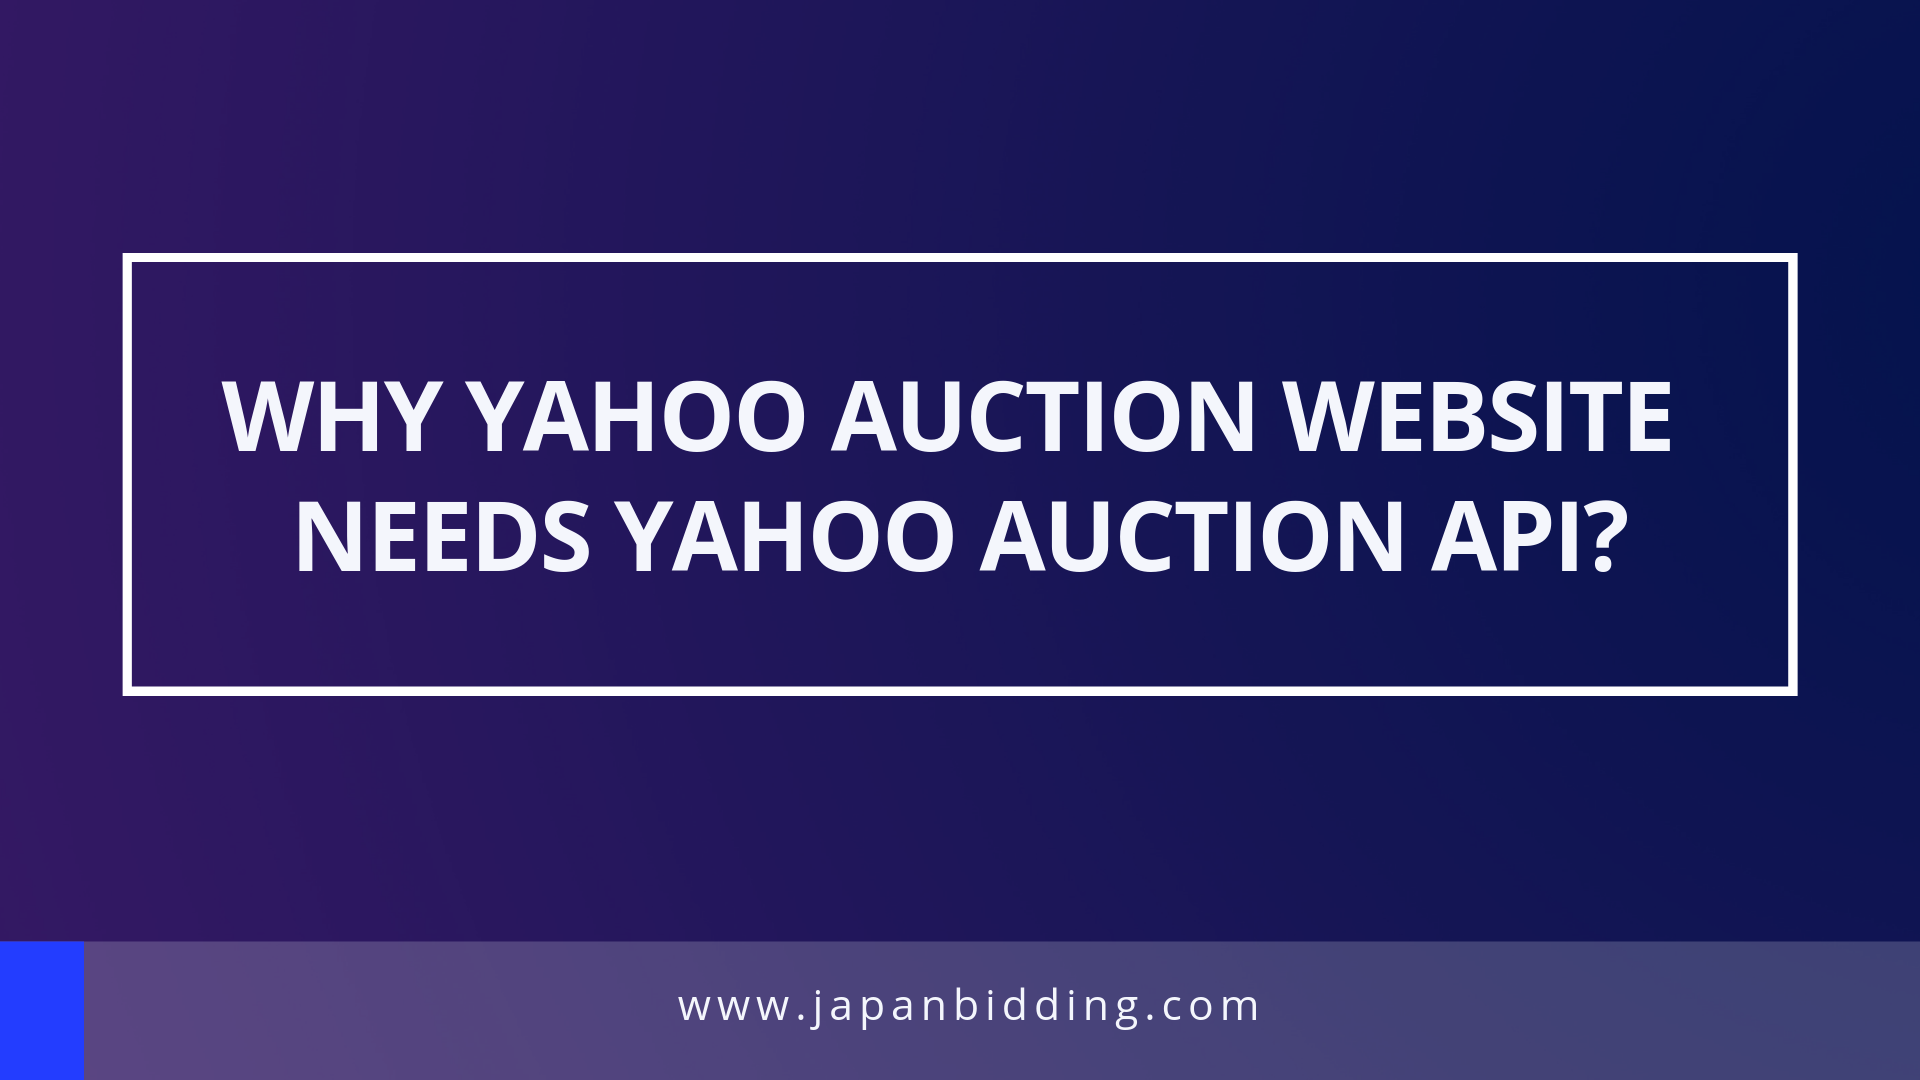 Why Yahoo Auction Website Need Yahoo Auction API?